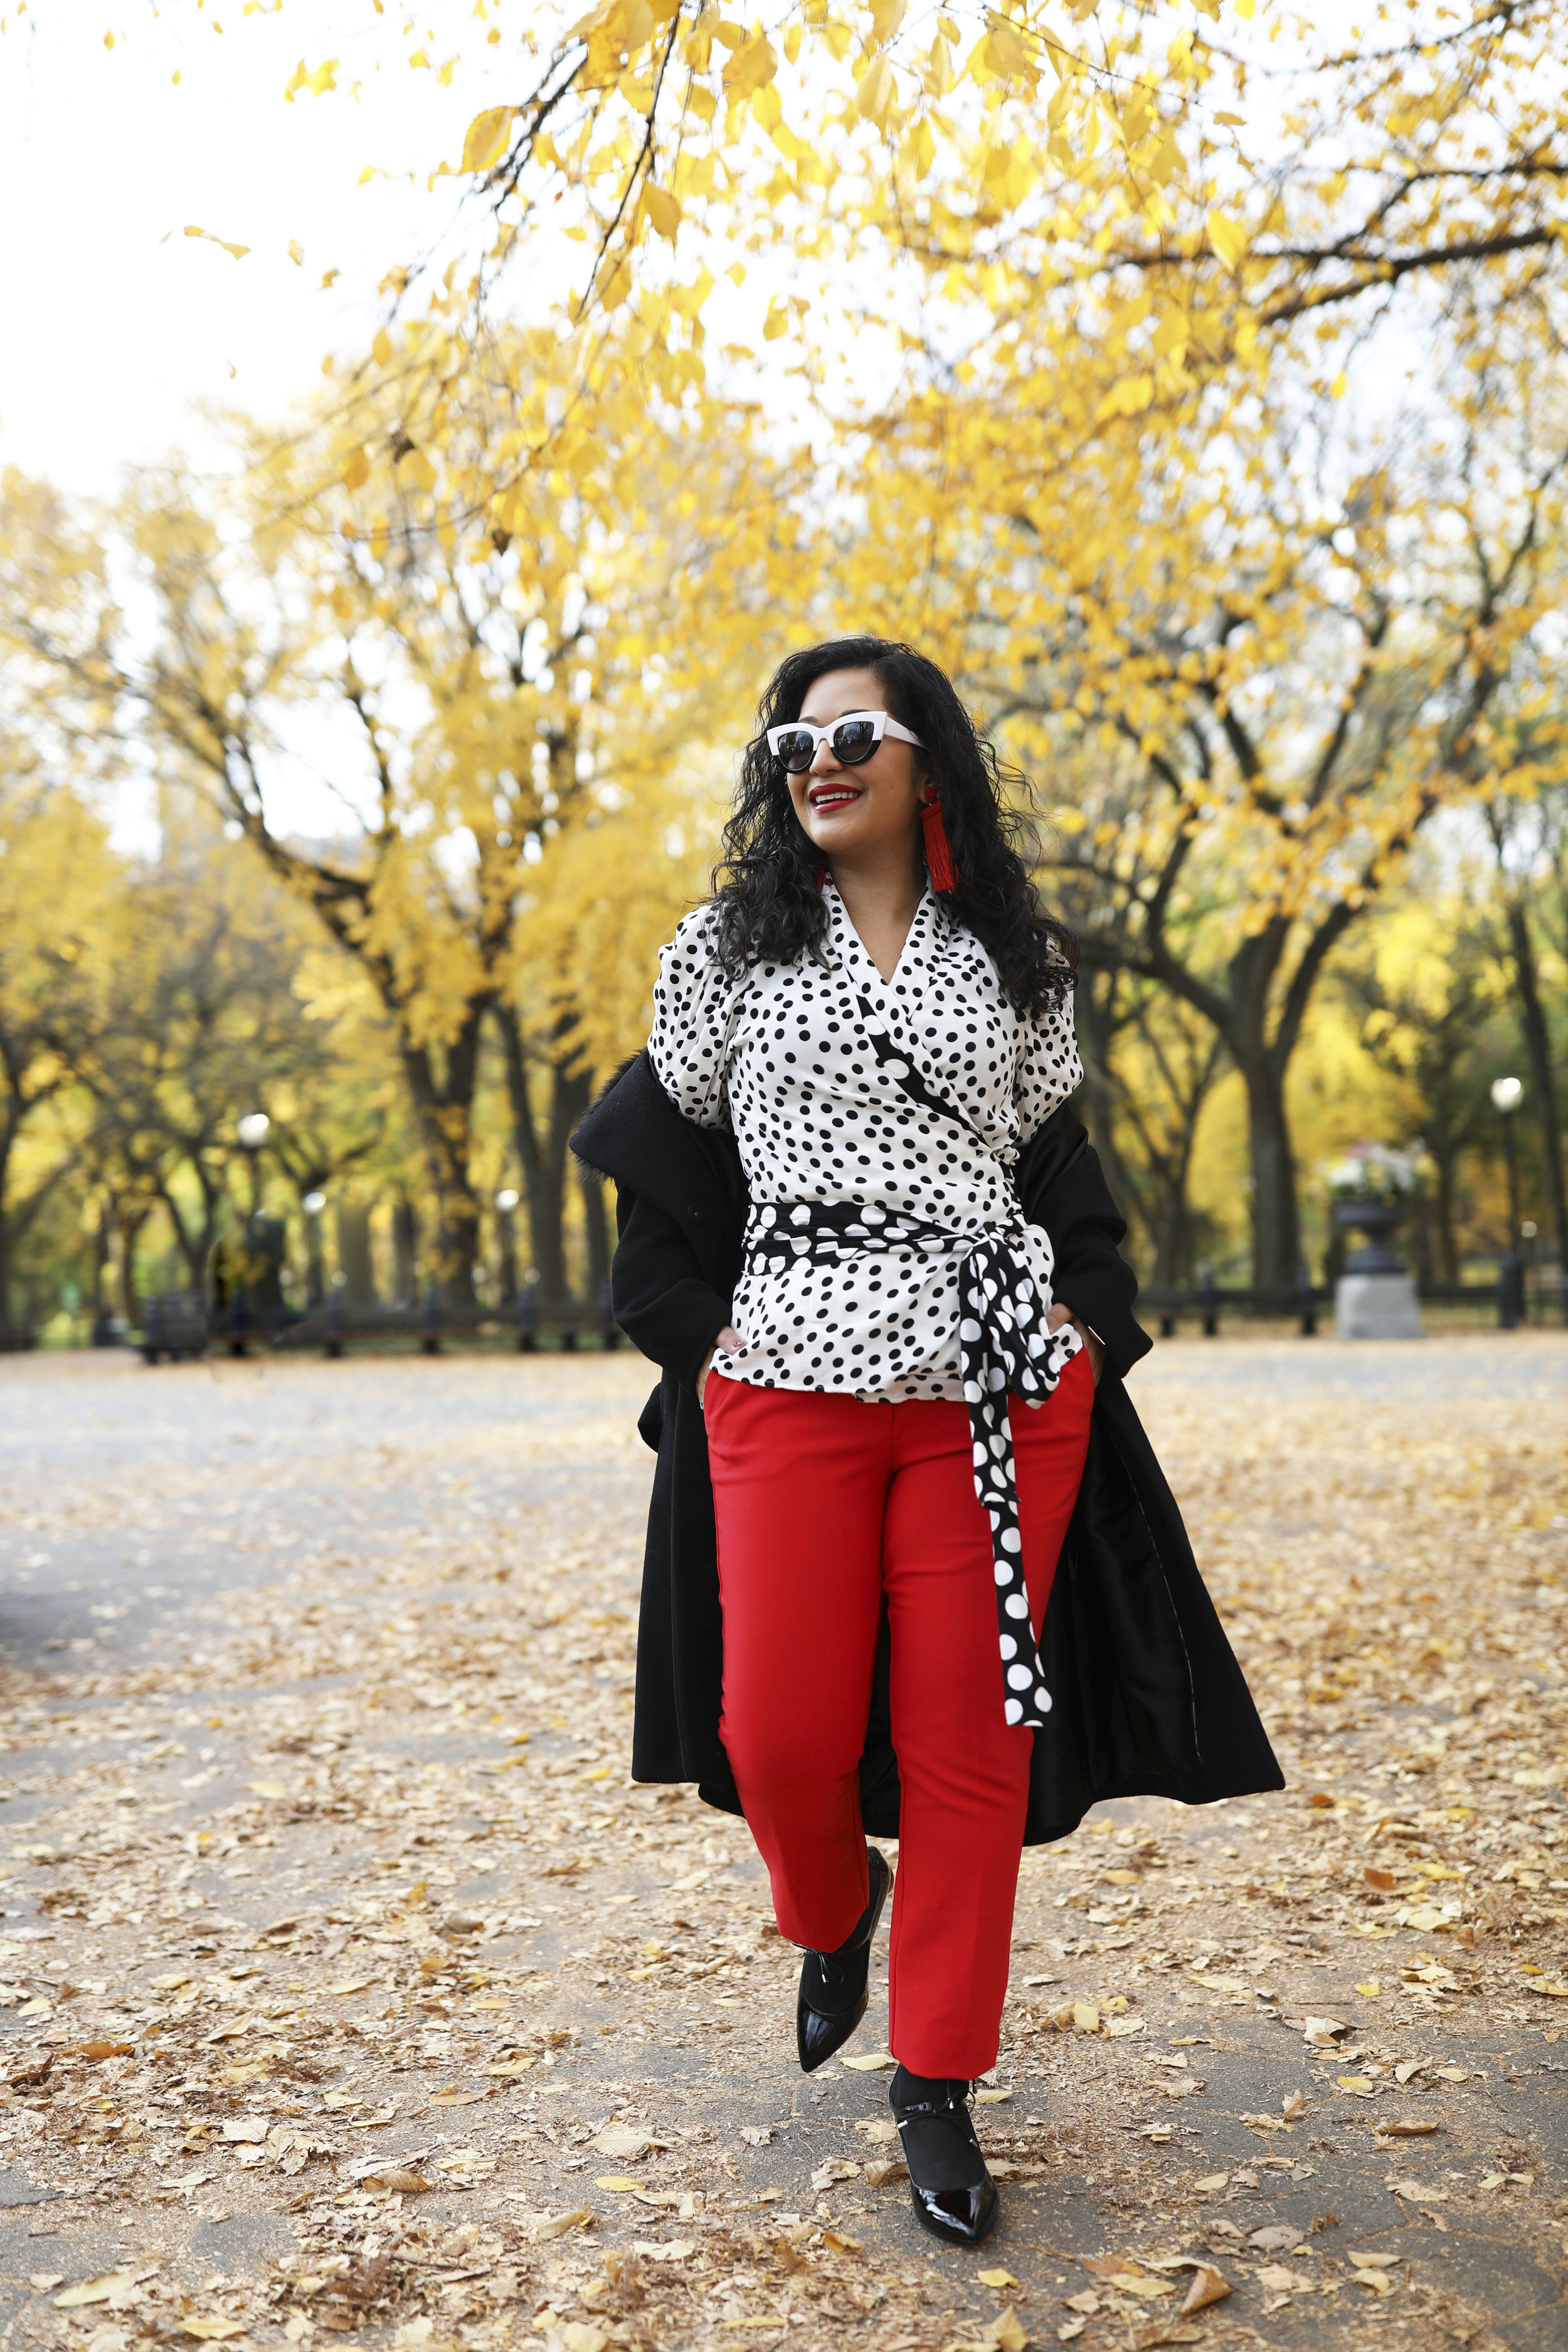 Polka dots with a pop color - Red is the perfect pop color to add to any look!